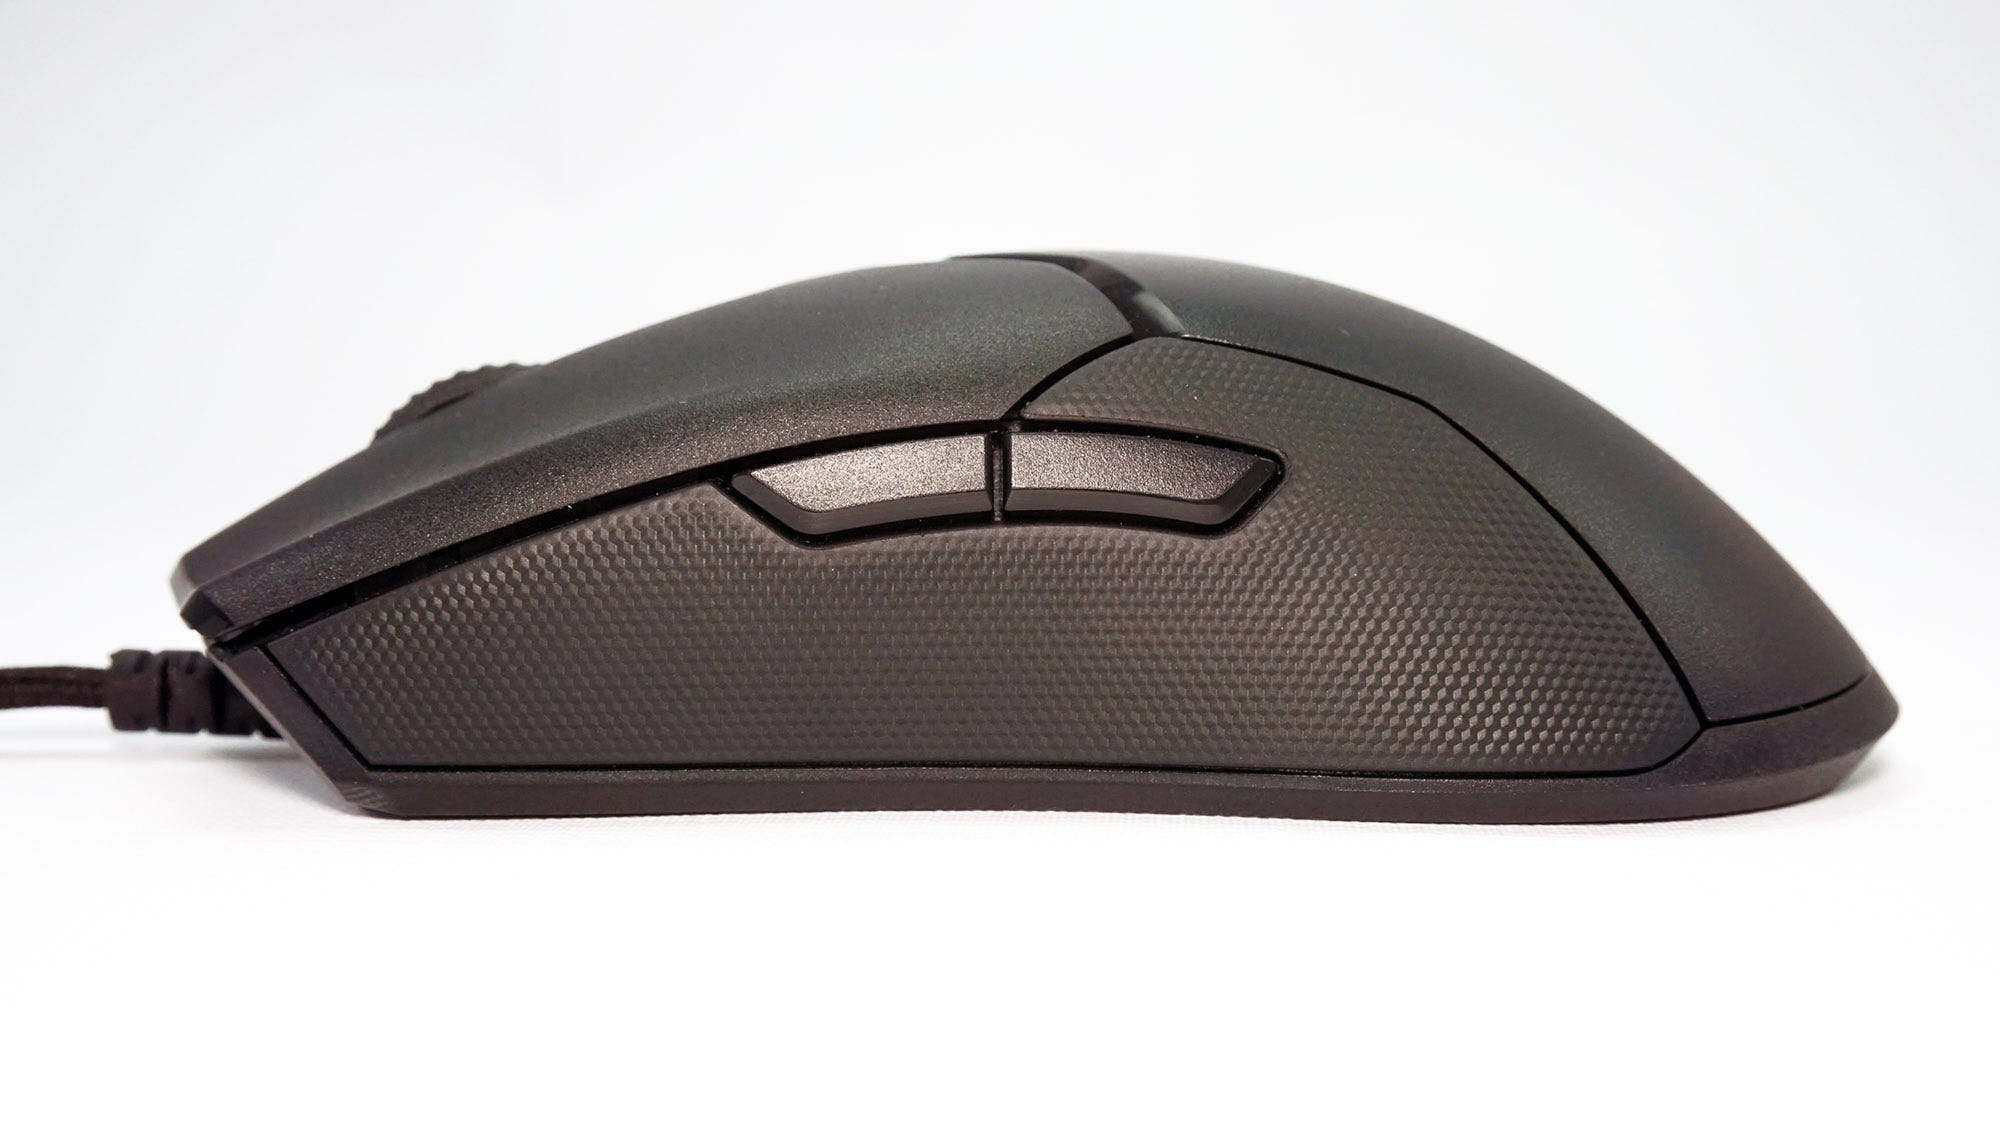 The Viper has a symmetrical ambidextrous design, with identical buttons on the left and right.